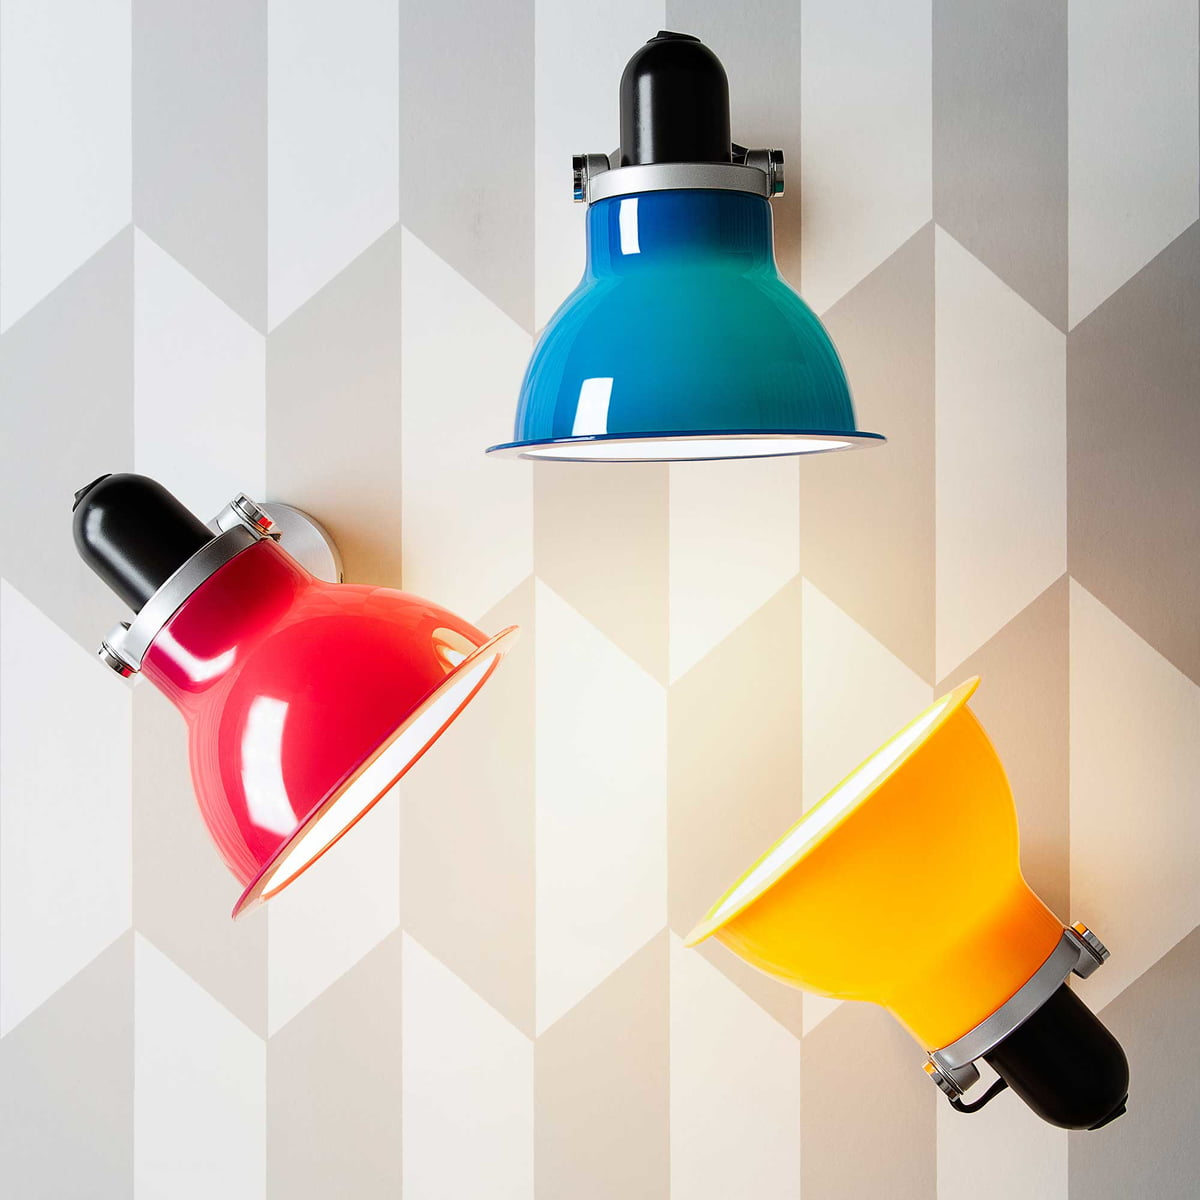 Type 1228 wall lamp by anglepoise anglepoise type 1228 wall lamp mozeypictures Image collections